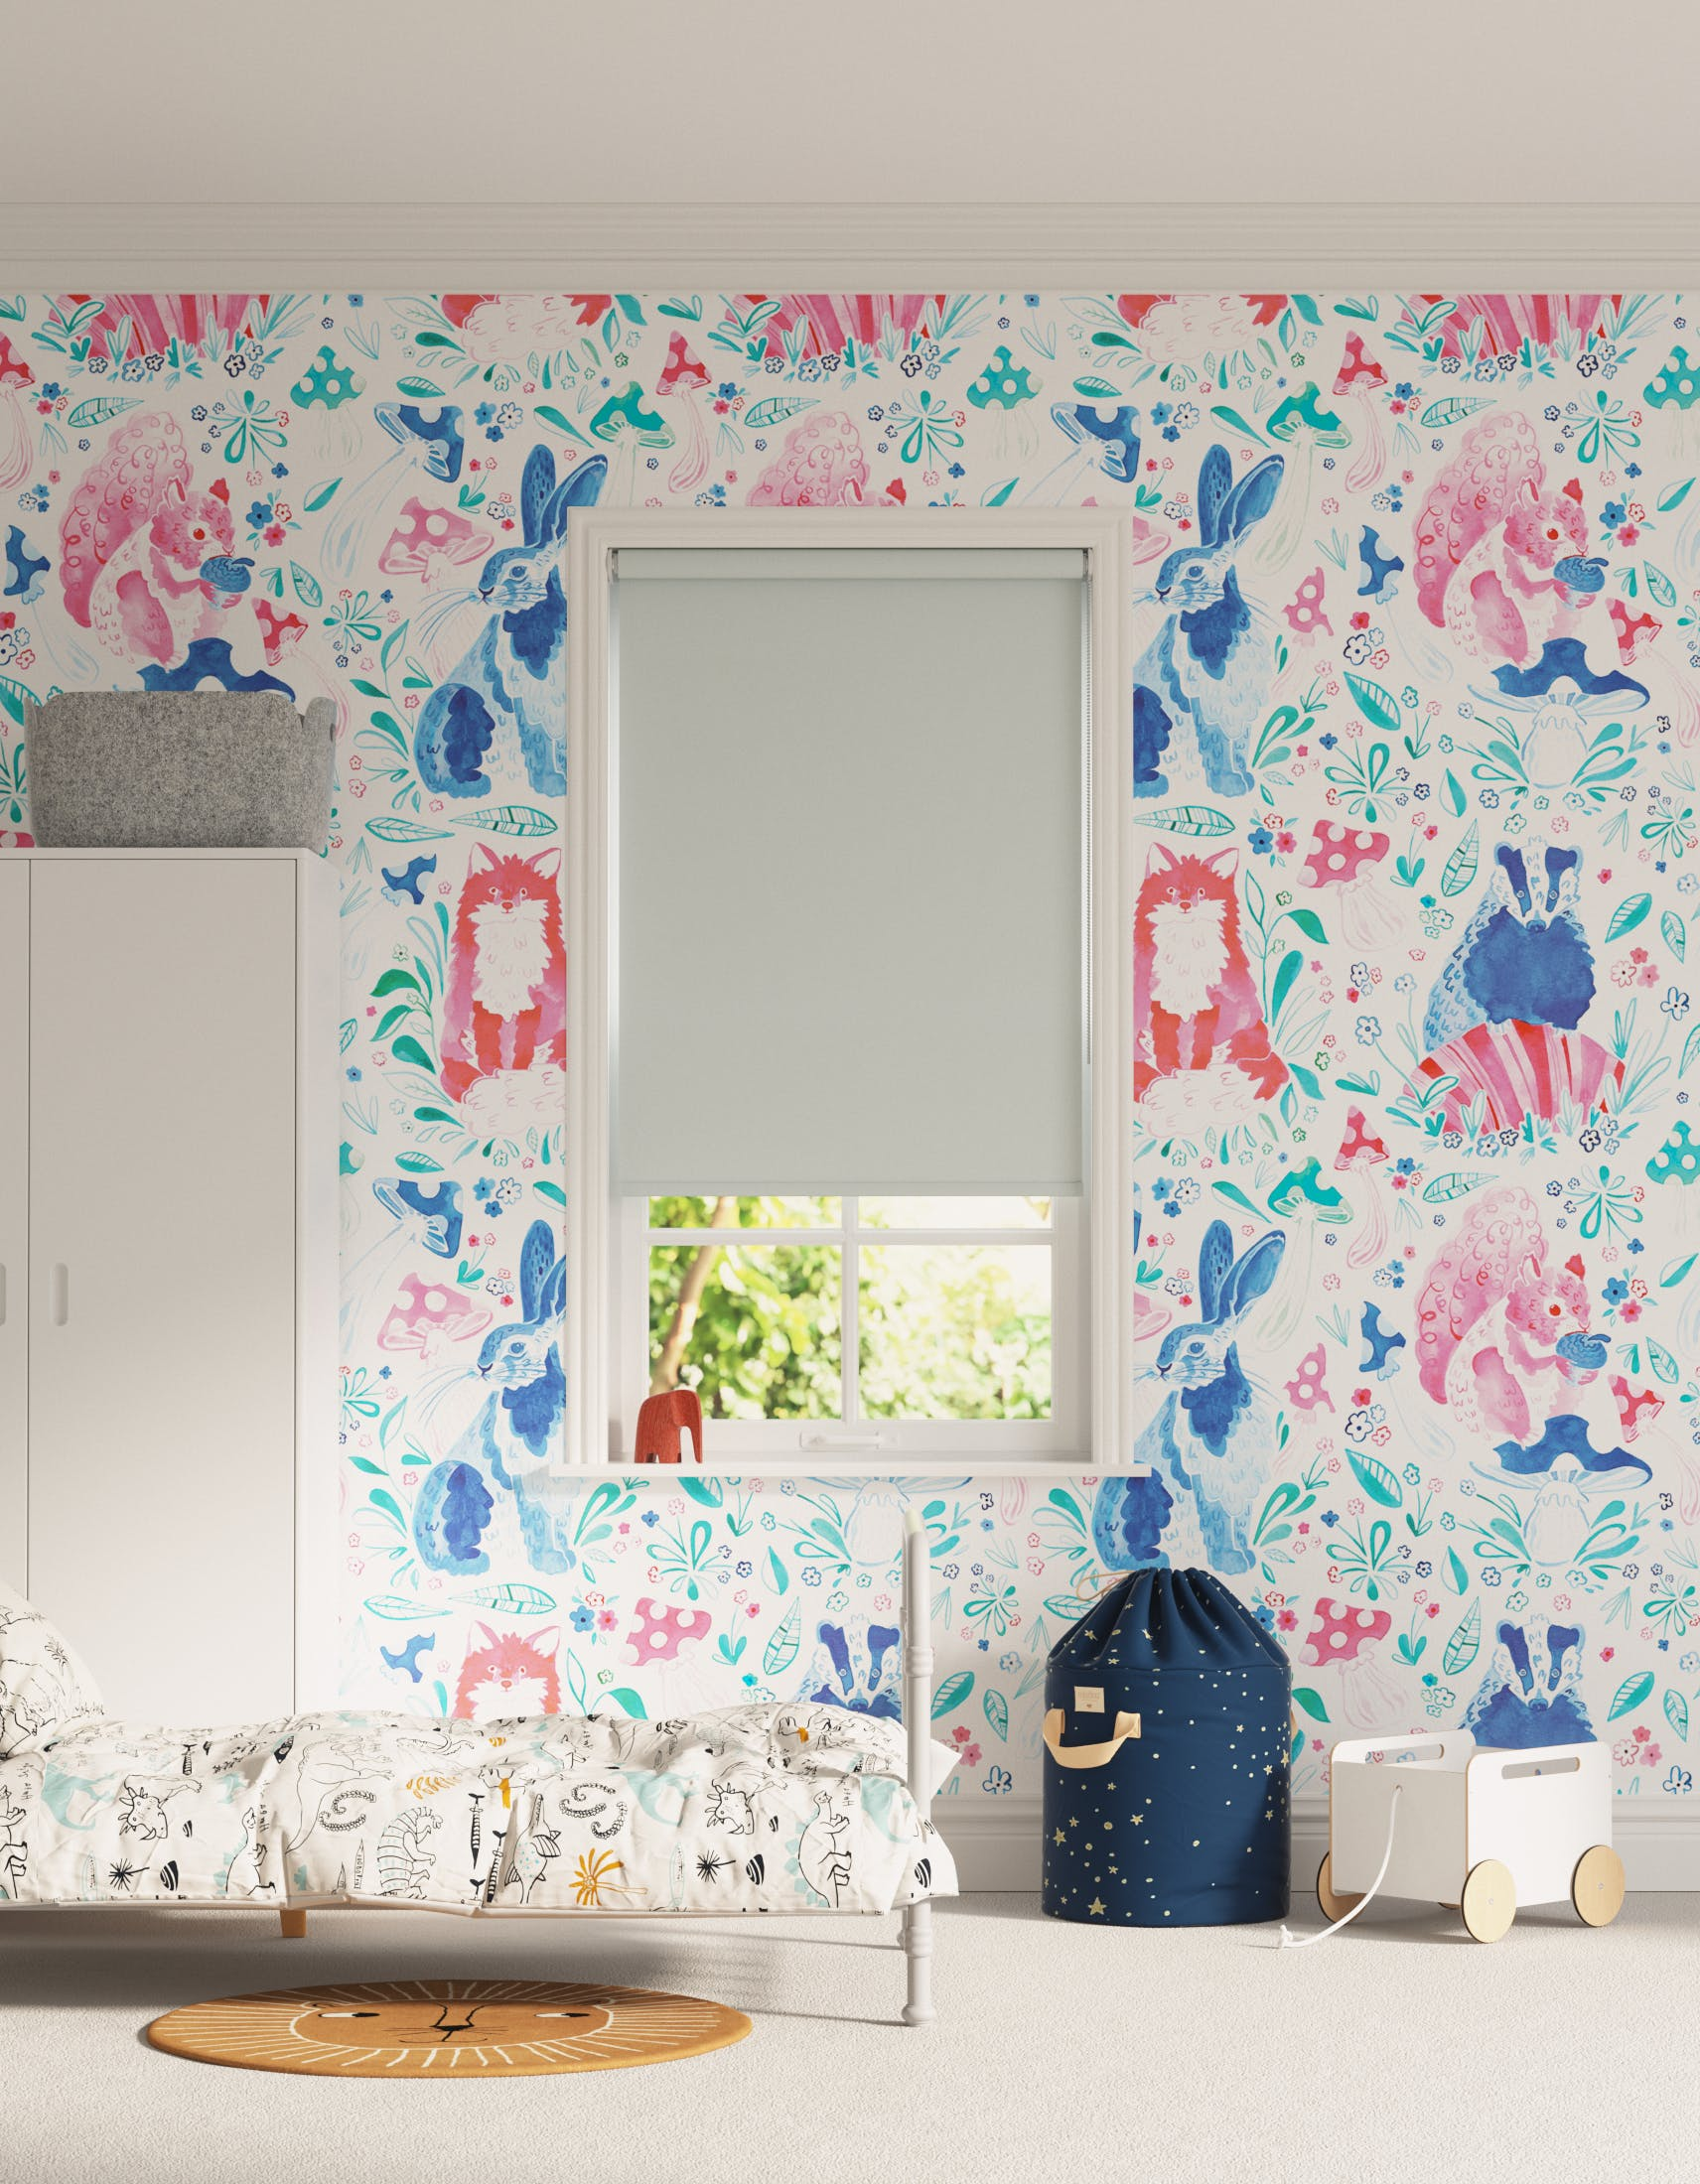 Children's bedroom decorated with Lick x Franki Barber Woodland Animals 01 pink and blue children's wallpaper